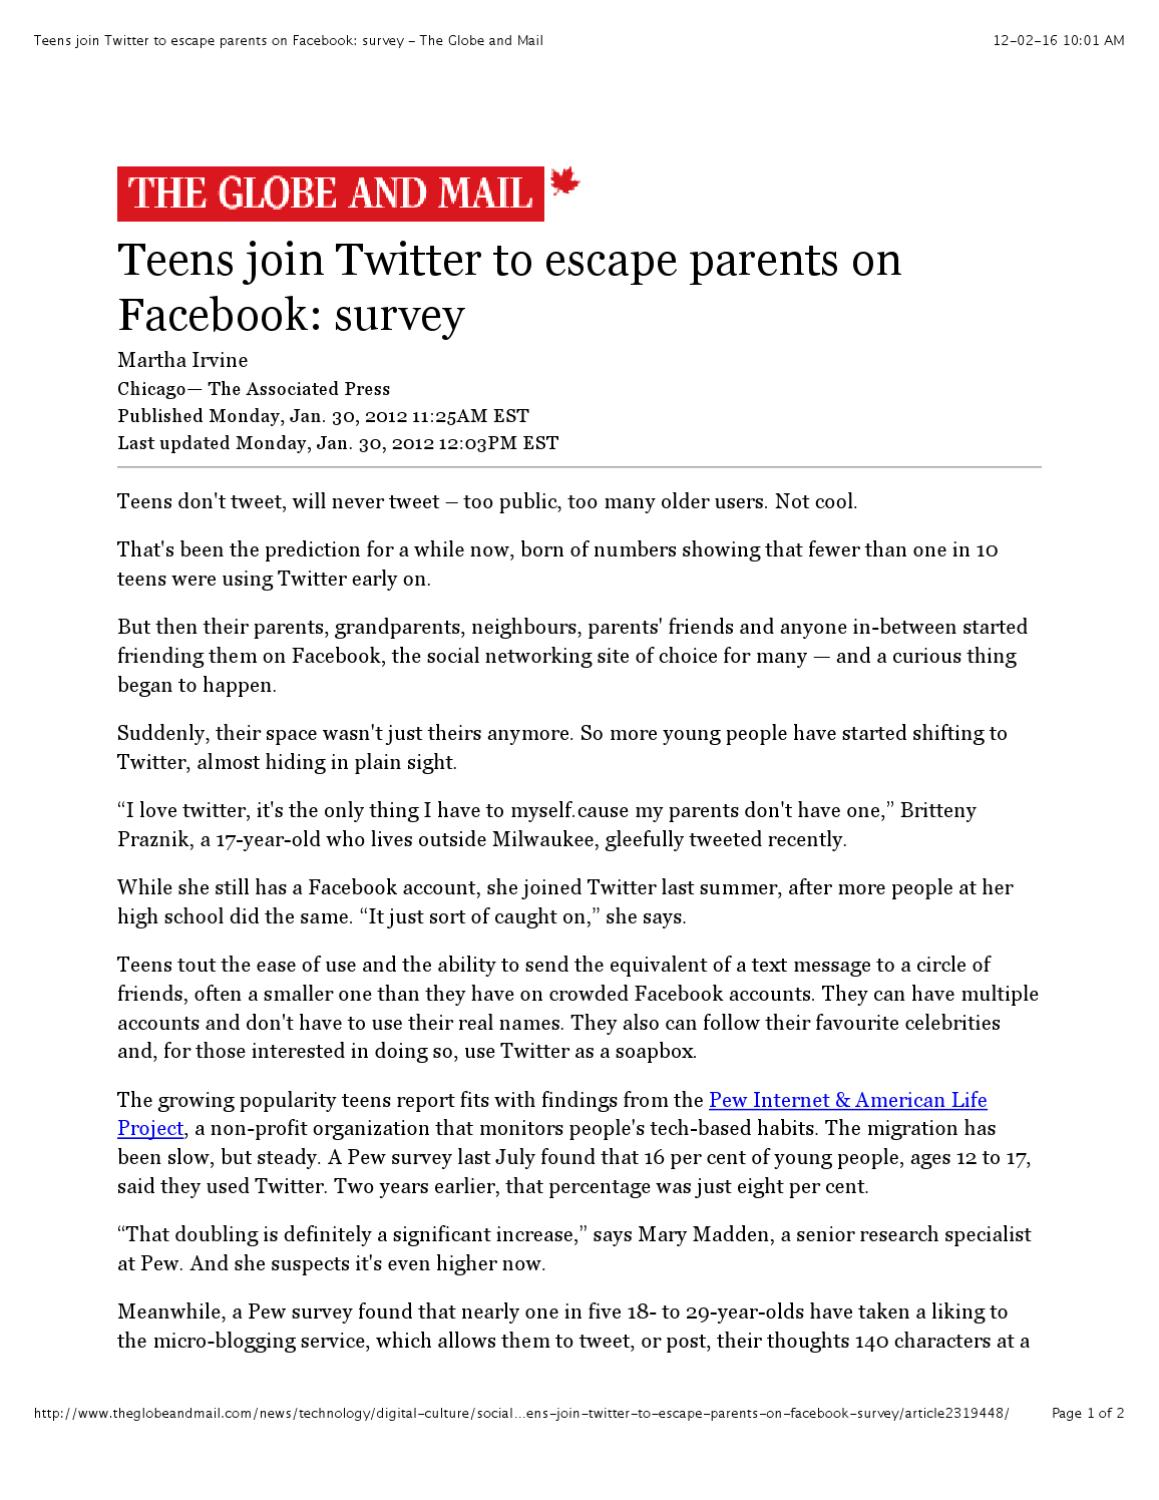 News that teens don tweet picture 129